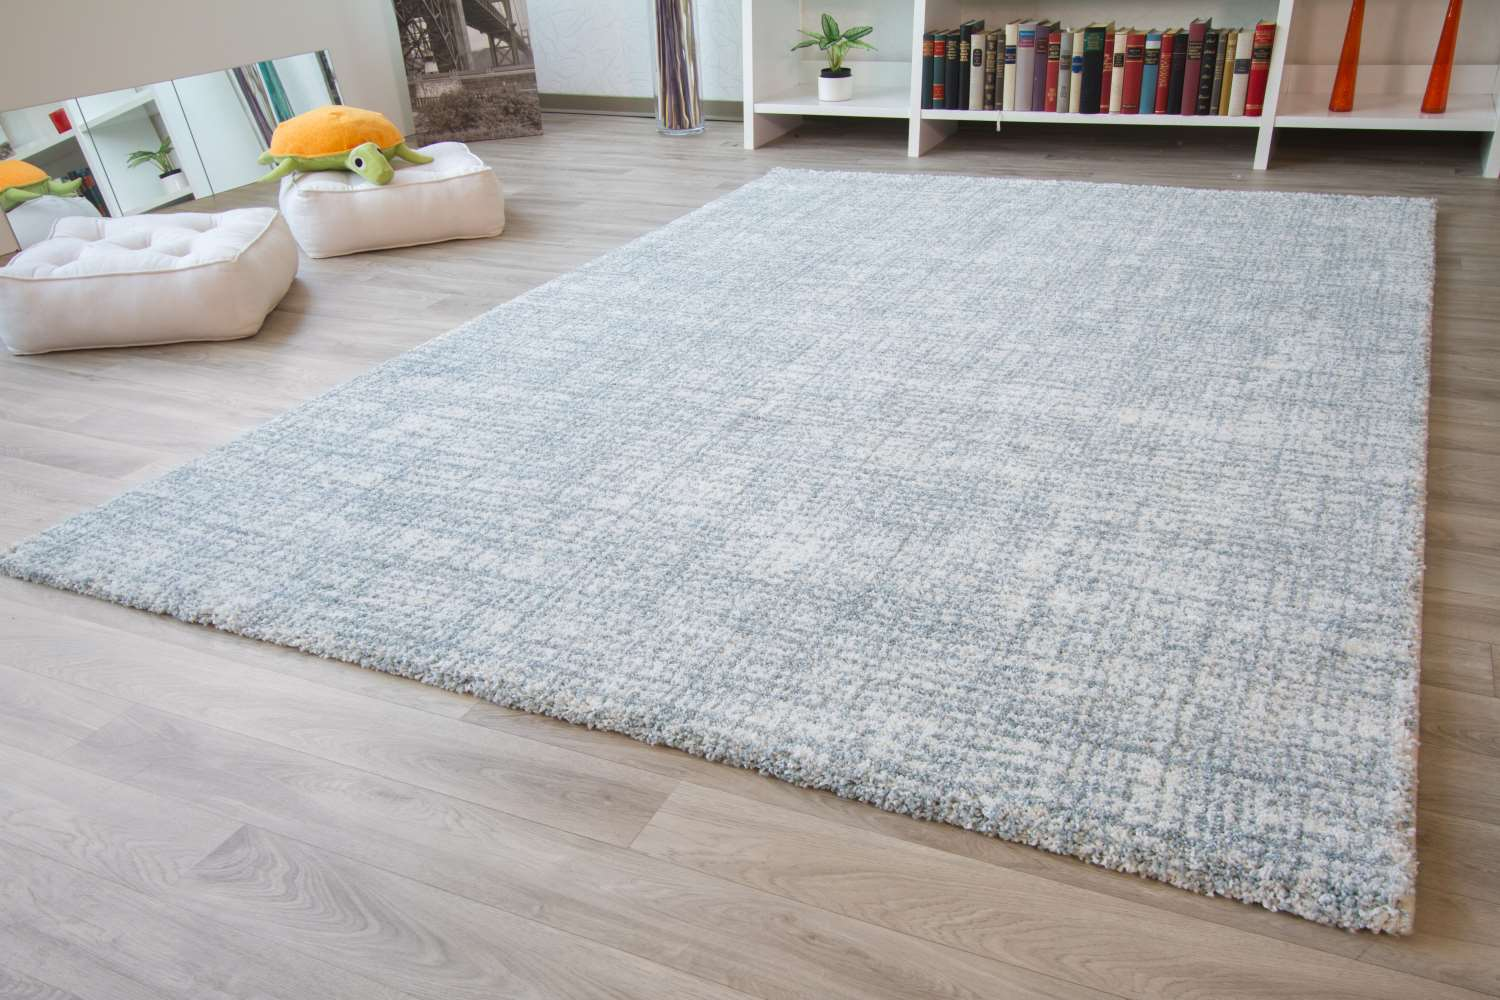 Designer teppich  Designerteppich Nancy | global-carpet